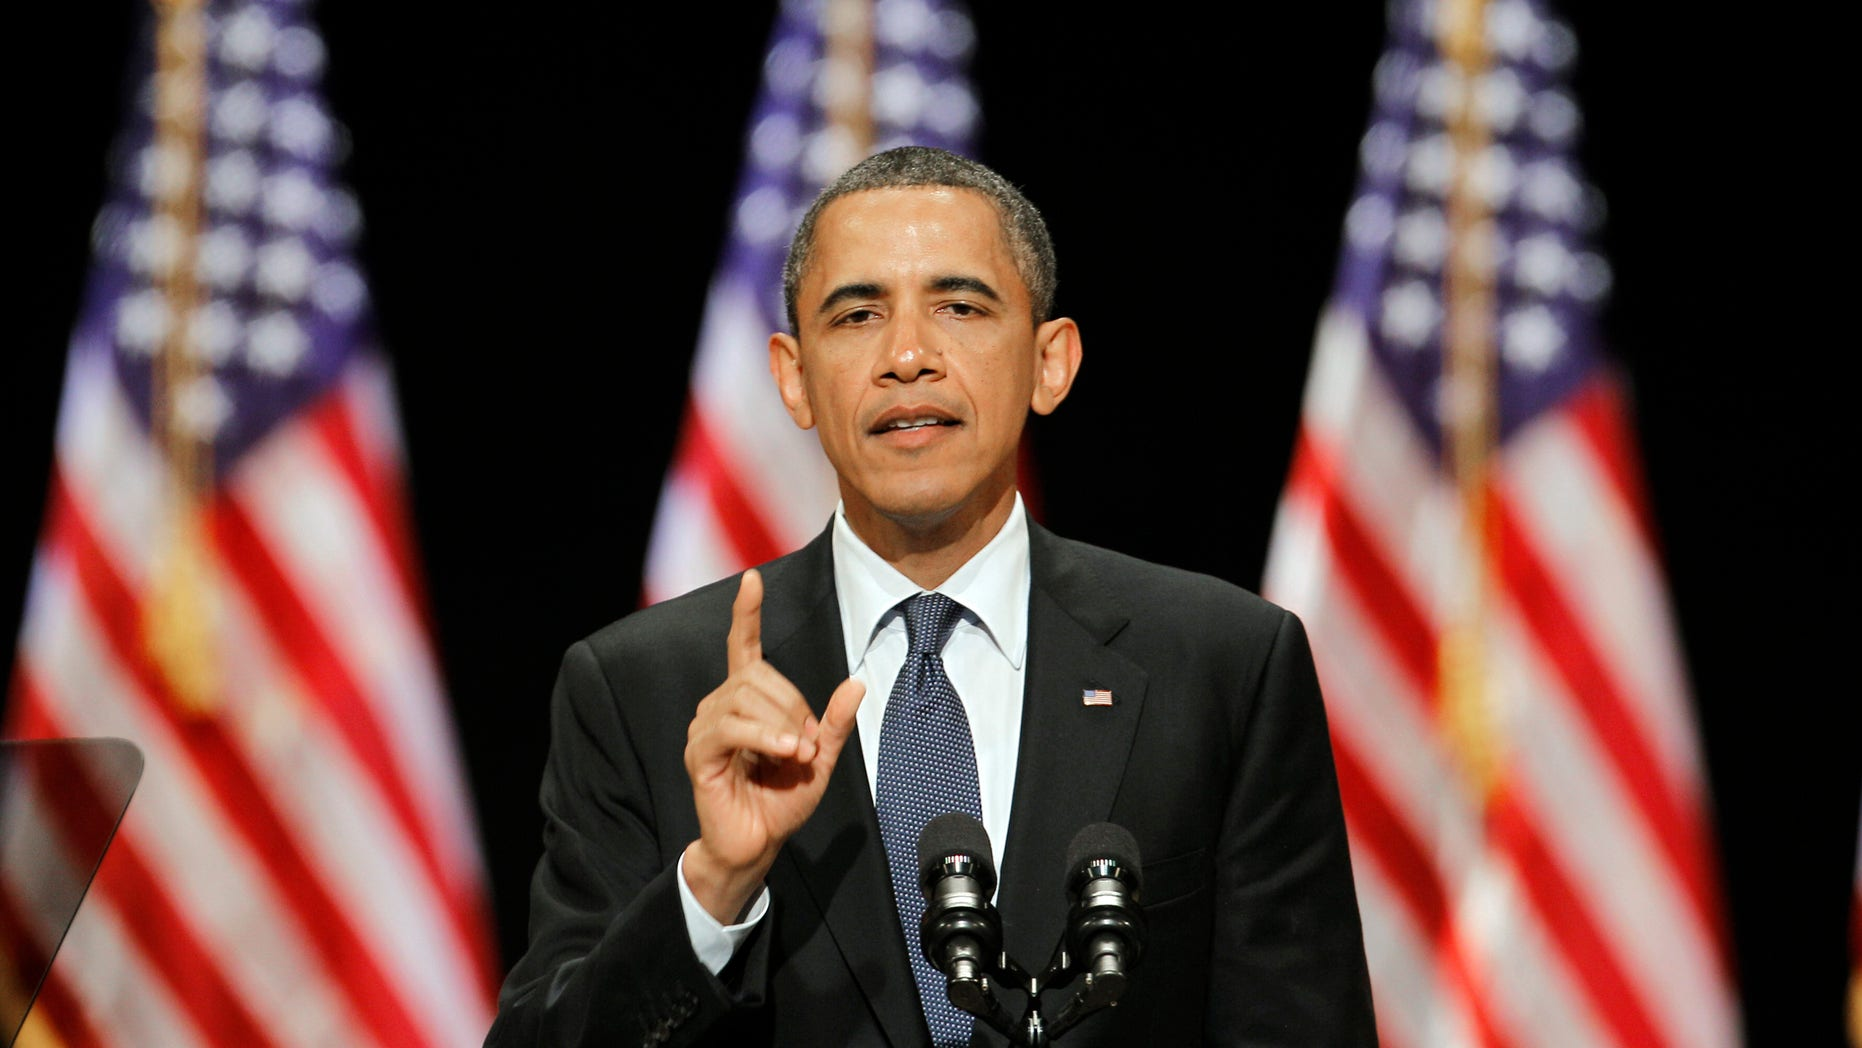 In a June 13, 2011 file photo, President Barack Obama speaks to a group of supporters at a Miami fundraiser, where he launched his bid for reelection in Florida. (AP)